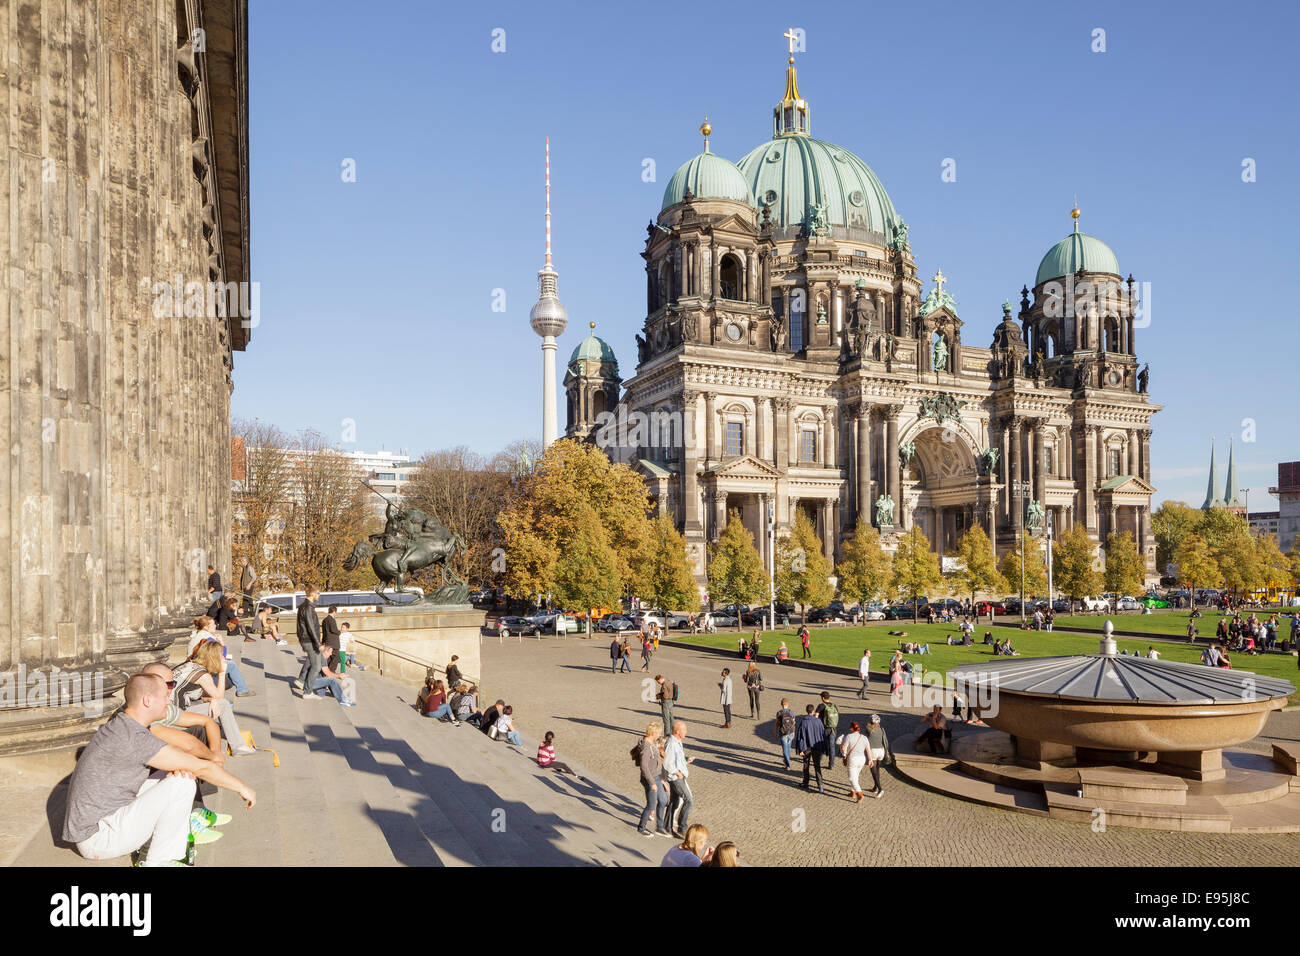 Berlin Cathedral and Lustgarten, Berlin, Germany - Stock Image